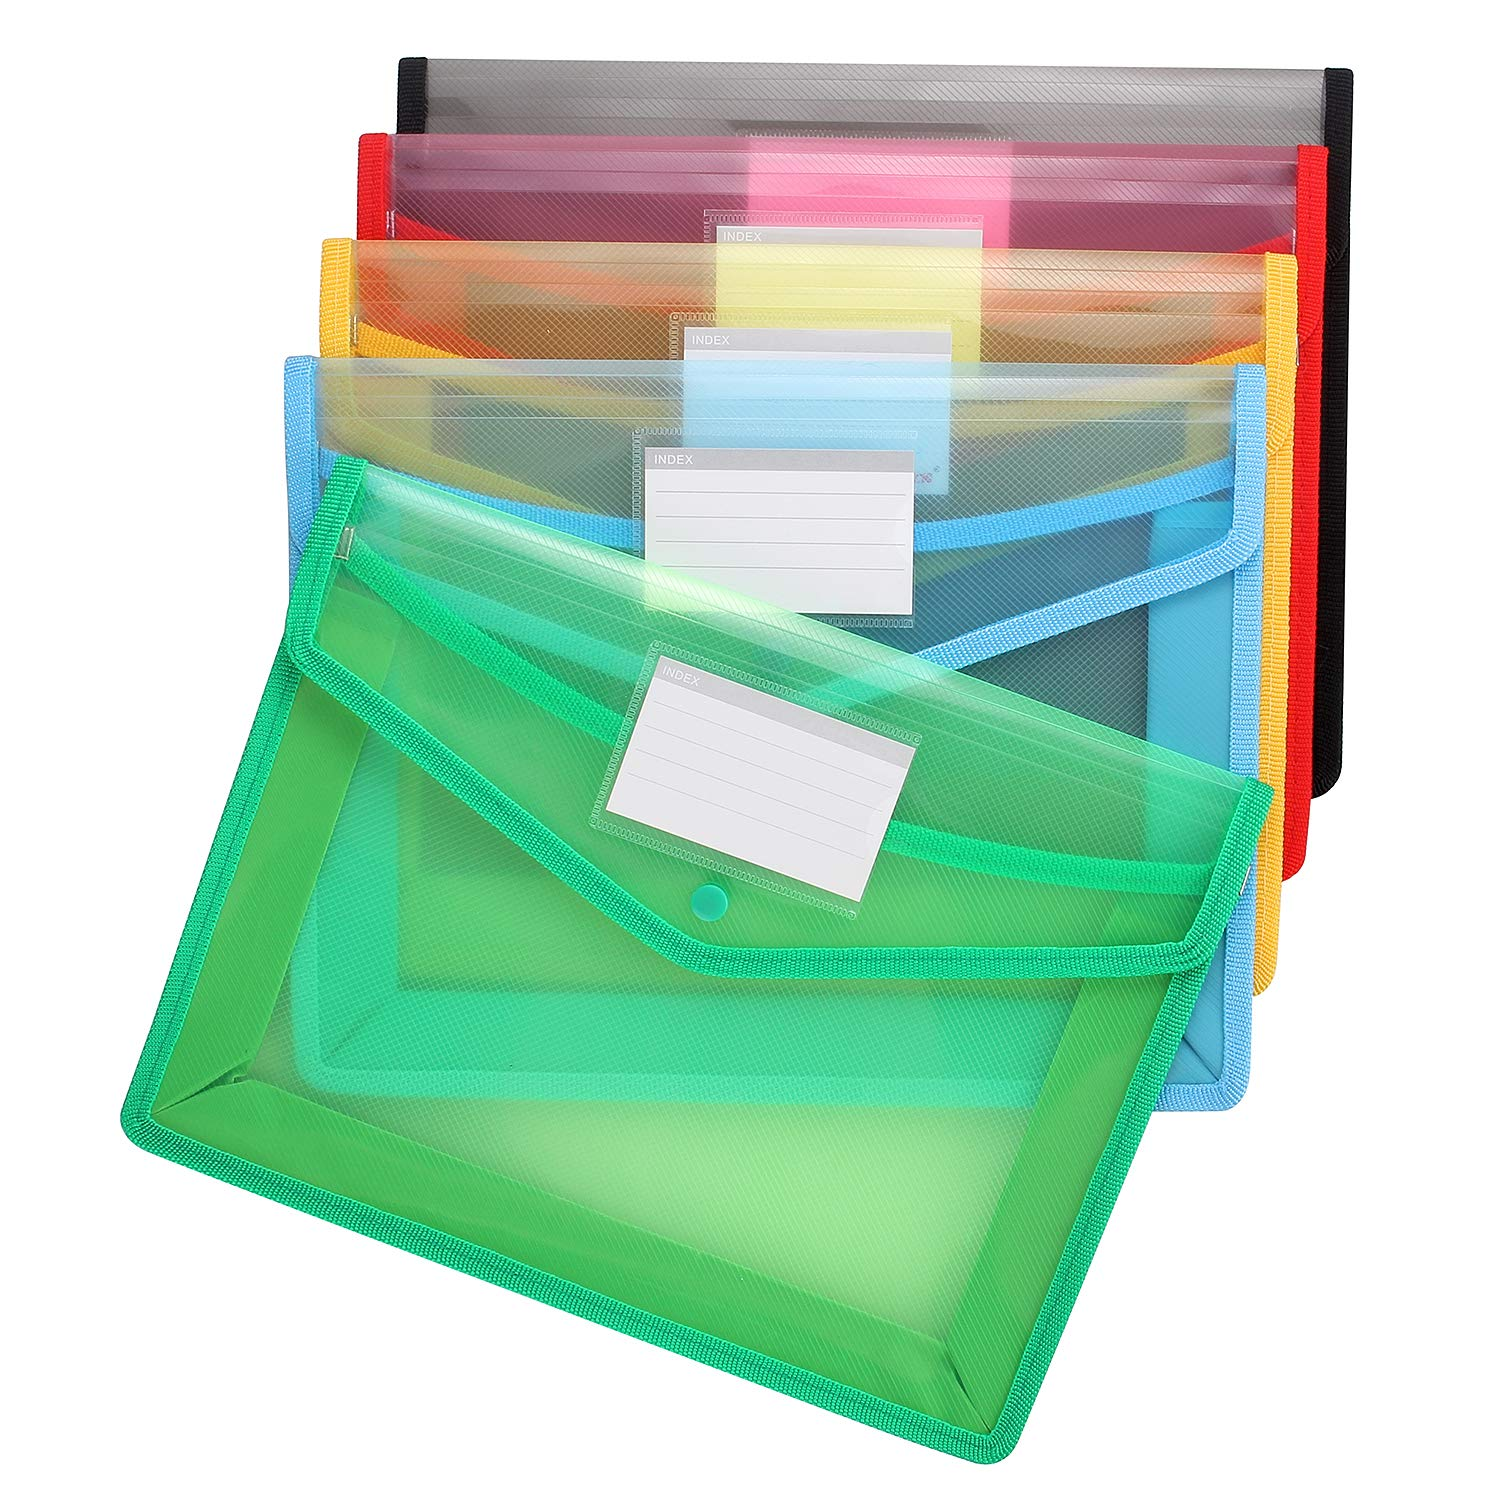 A4 Document Folder, Acrux7 Plastic Wallet with Pocket, 5 Pack A4 Envelope Folder with Snap Button, Waterproof Transparent File Folders, 5 Assorted Colors- Blue, Green, Black, Red, Yellow